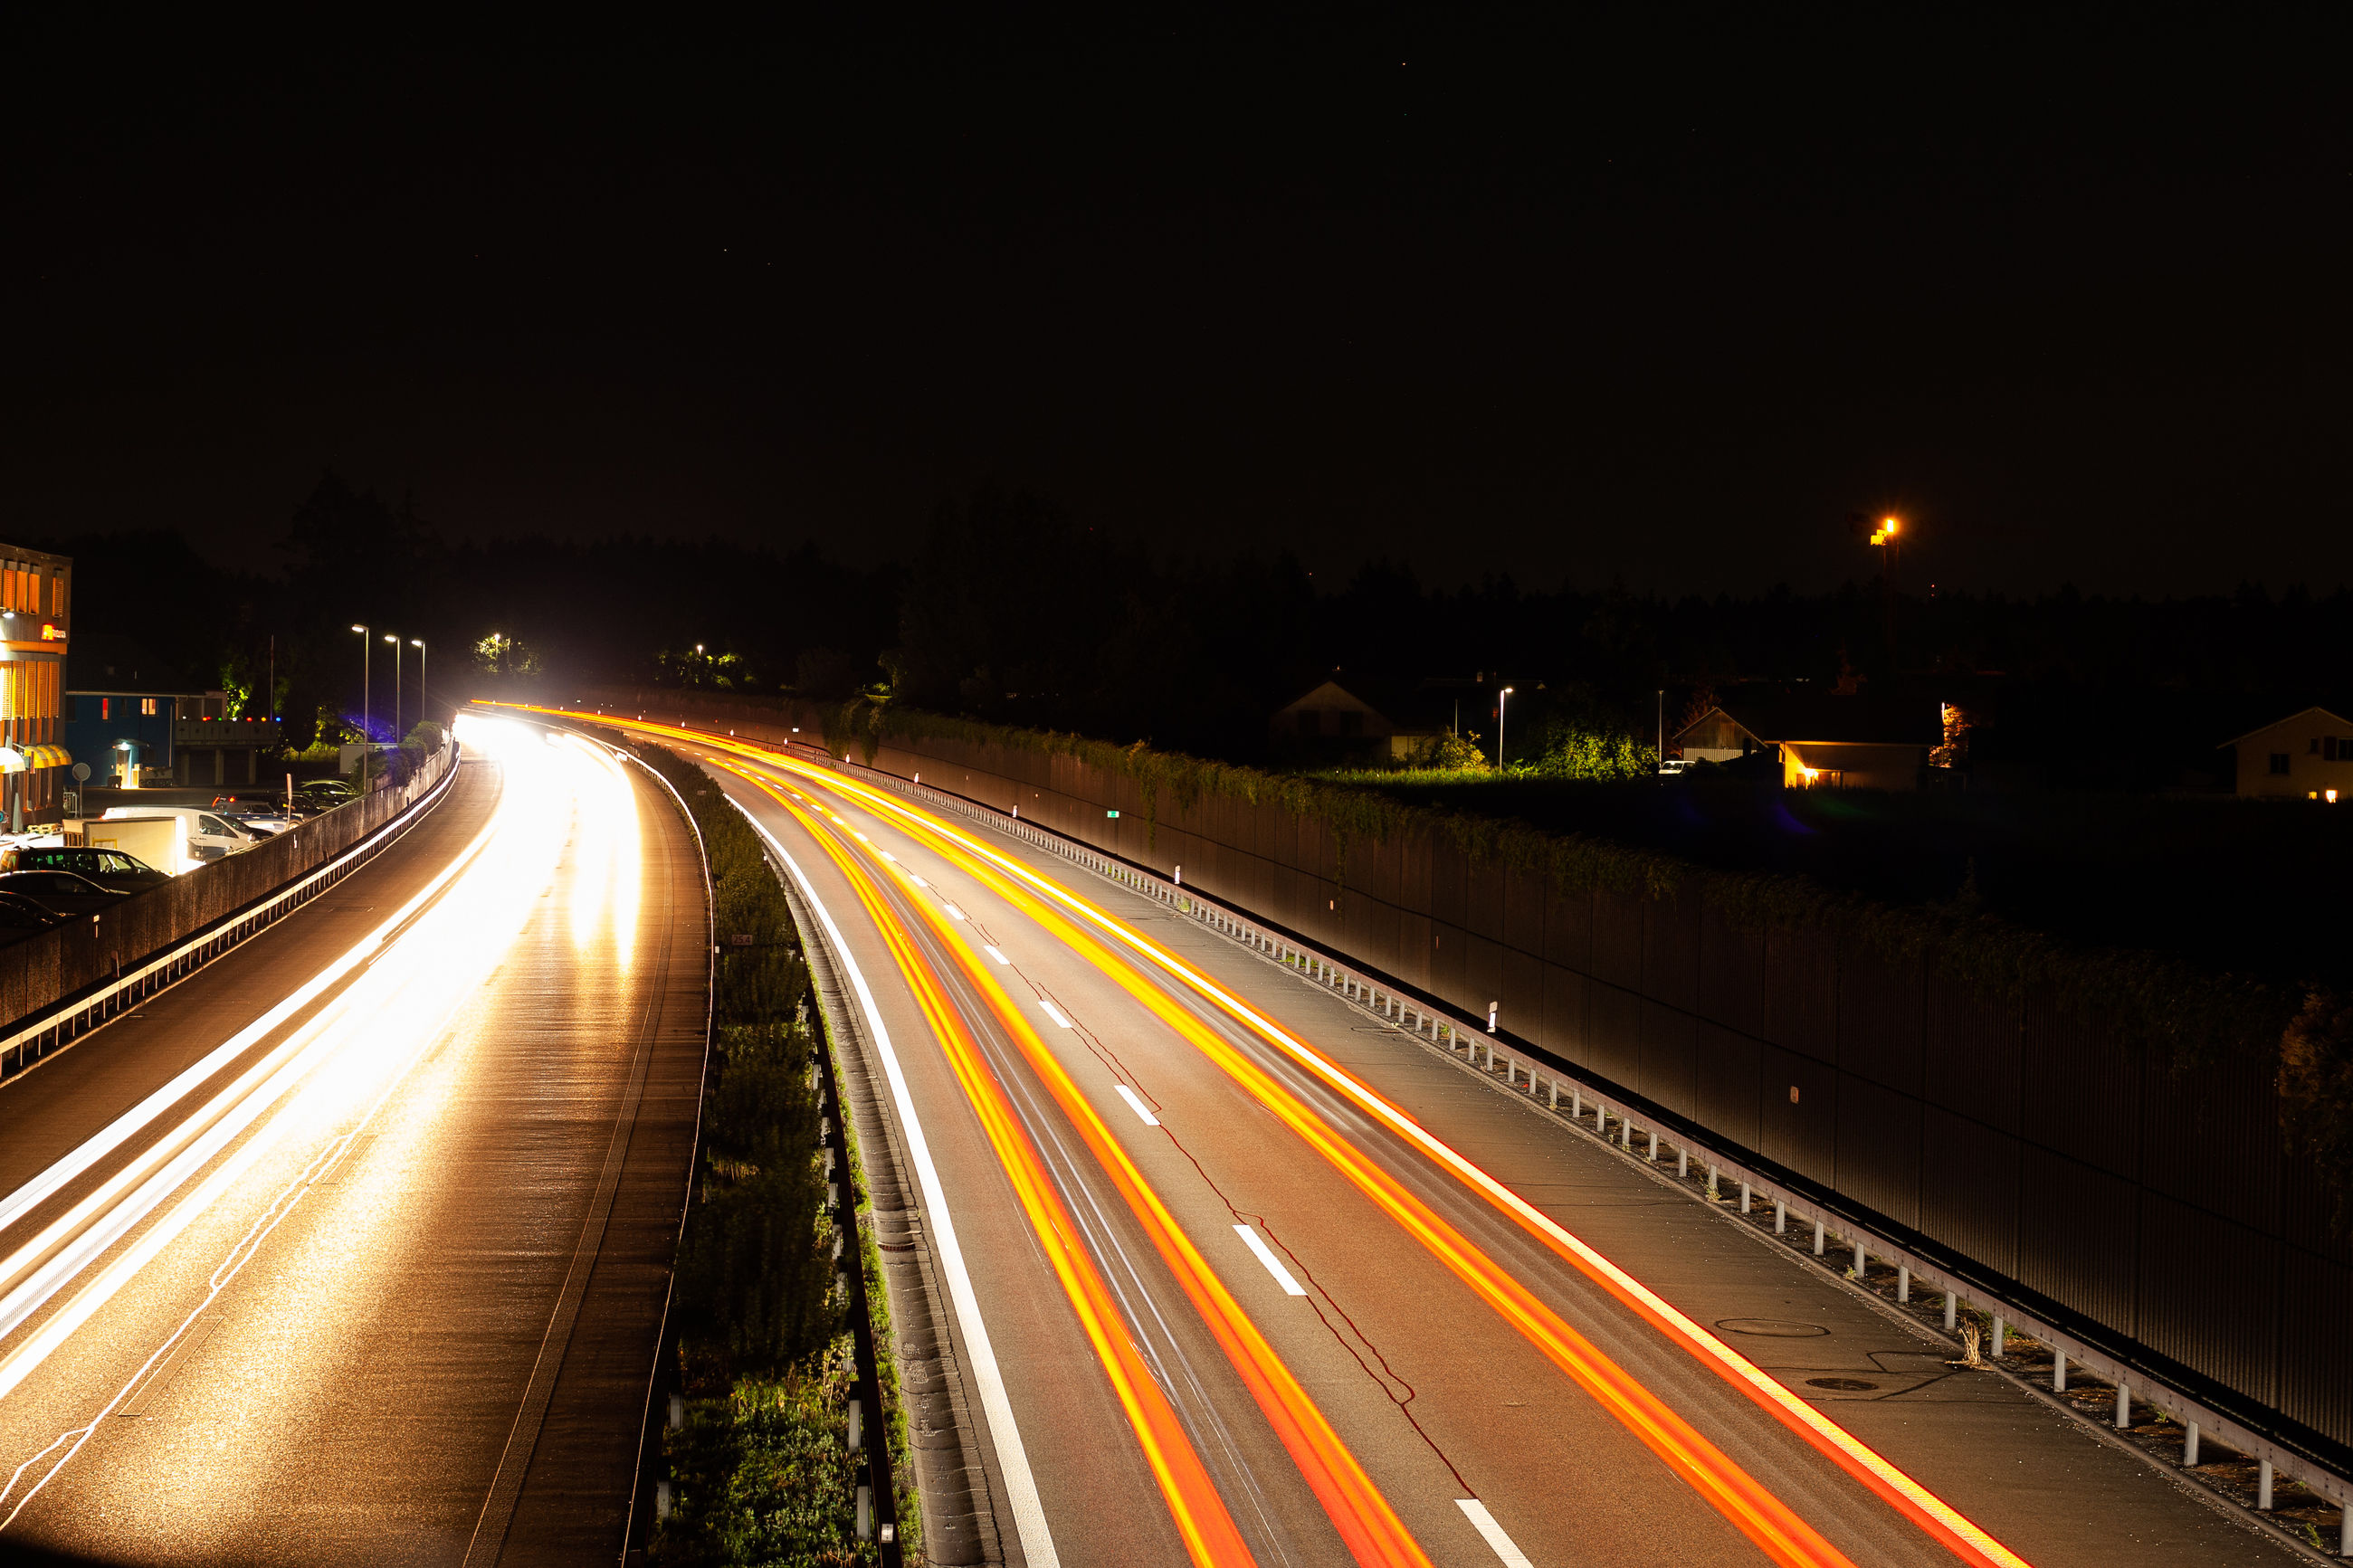 illuminated, long exposure, motion, light trail, night, road, transportation, speed, city, architecture, street, highway, no people, glowing, traffic, blurred motion, city life, street light, the way forward, sky, diminishing perspective, outdoors, multiple lane highway, vehicle light, light